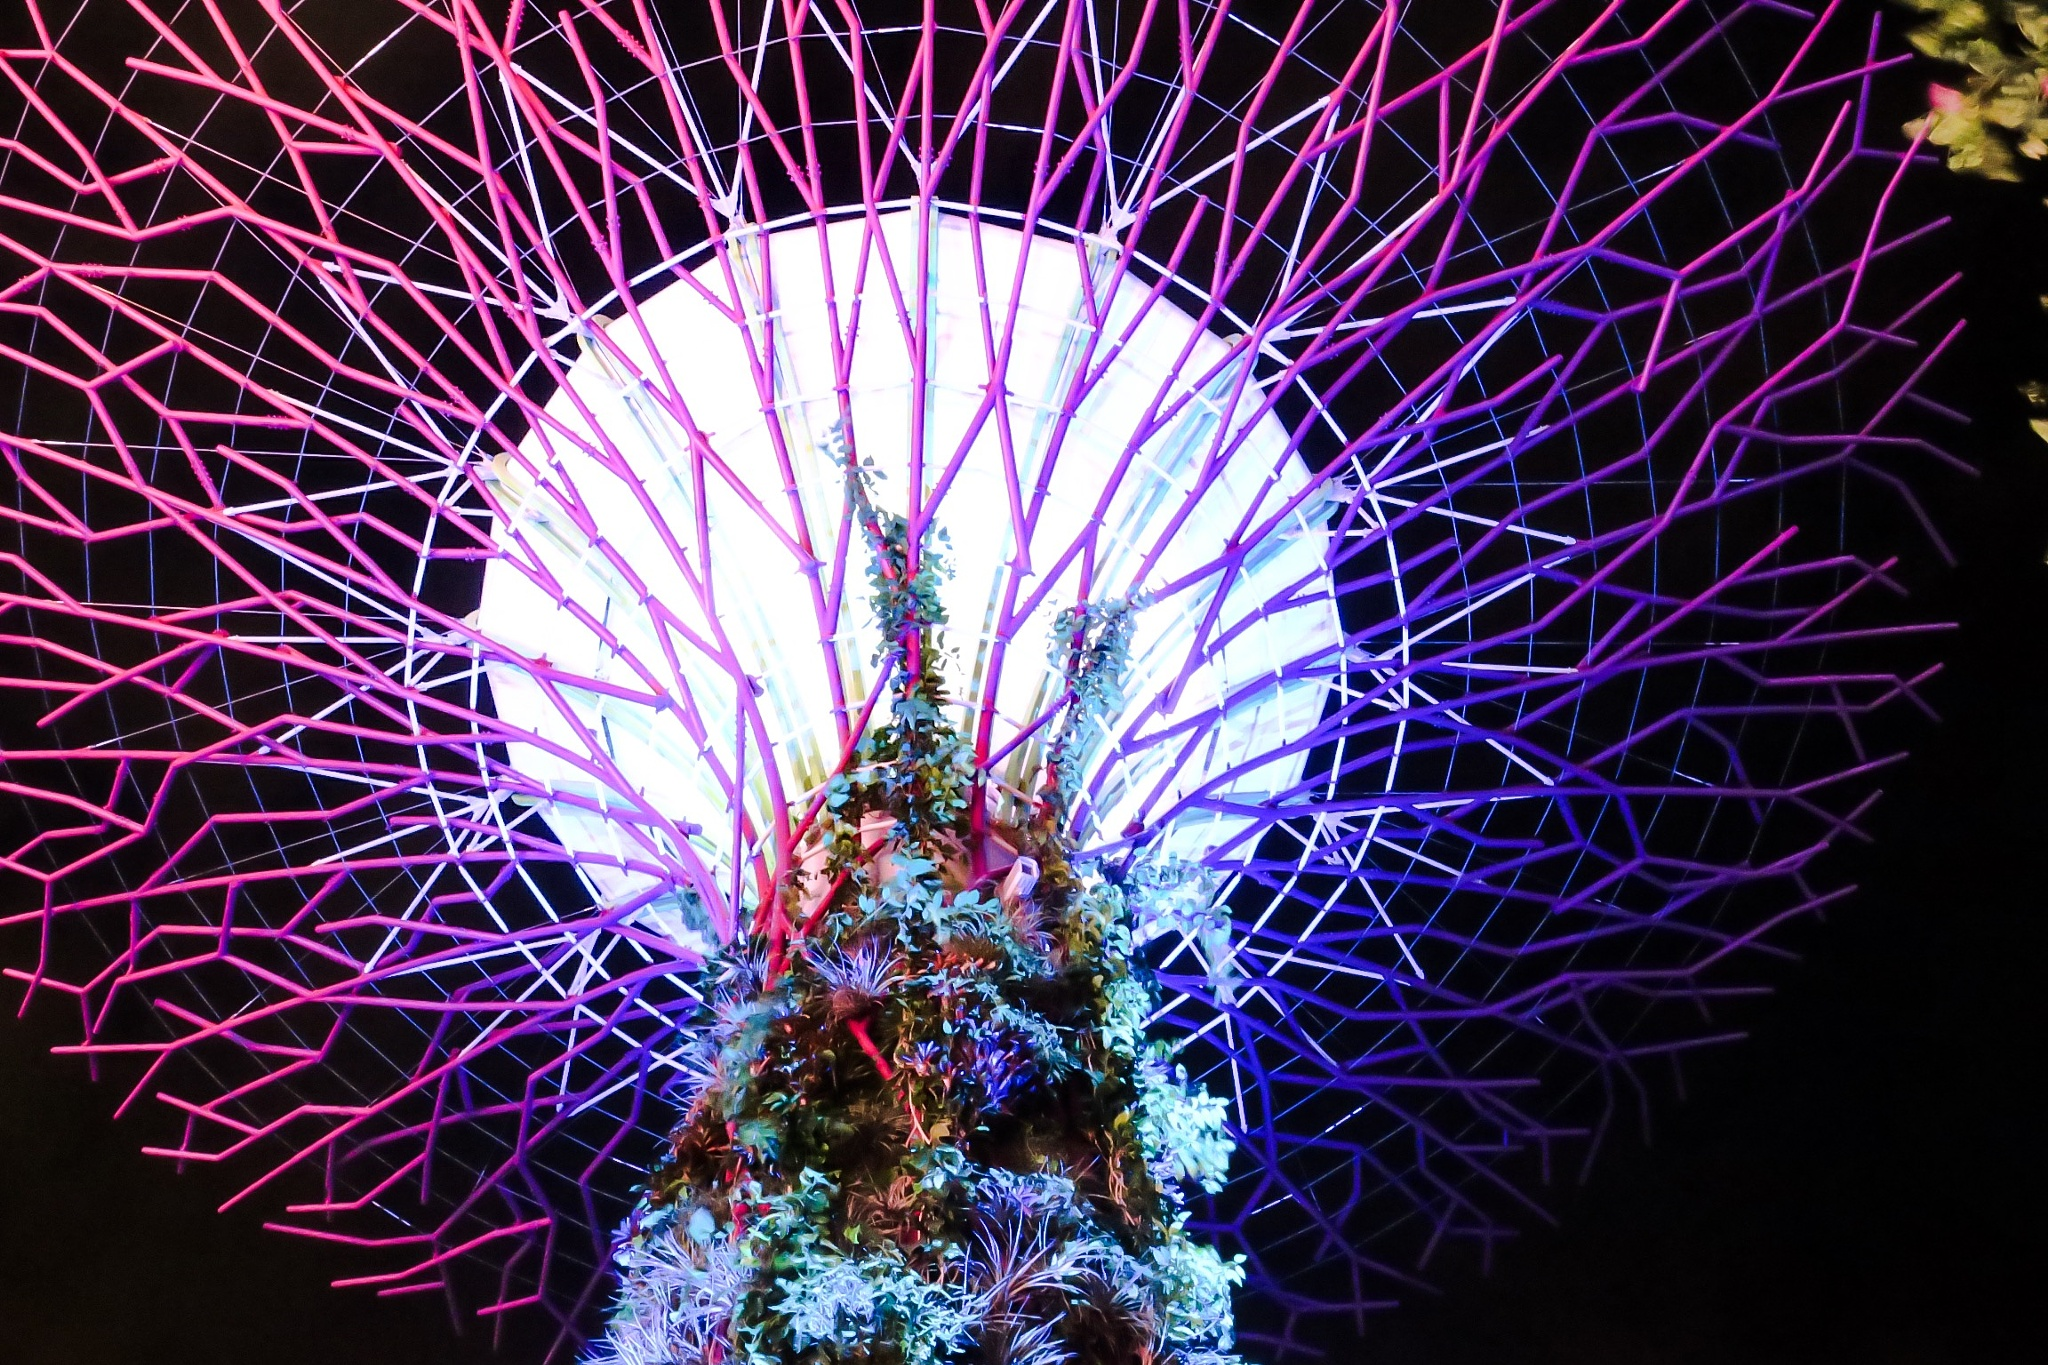 Tree from Gardens by the bay by Adi Gli